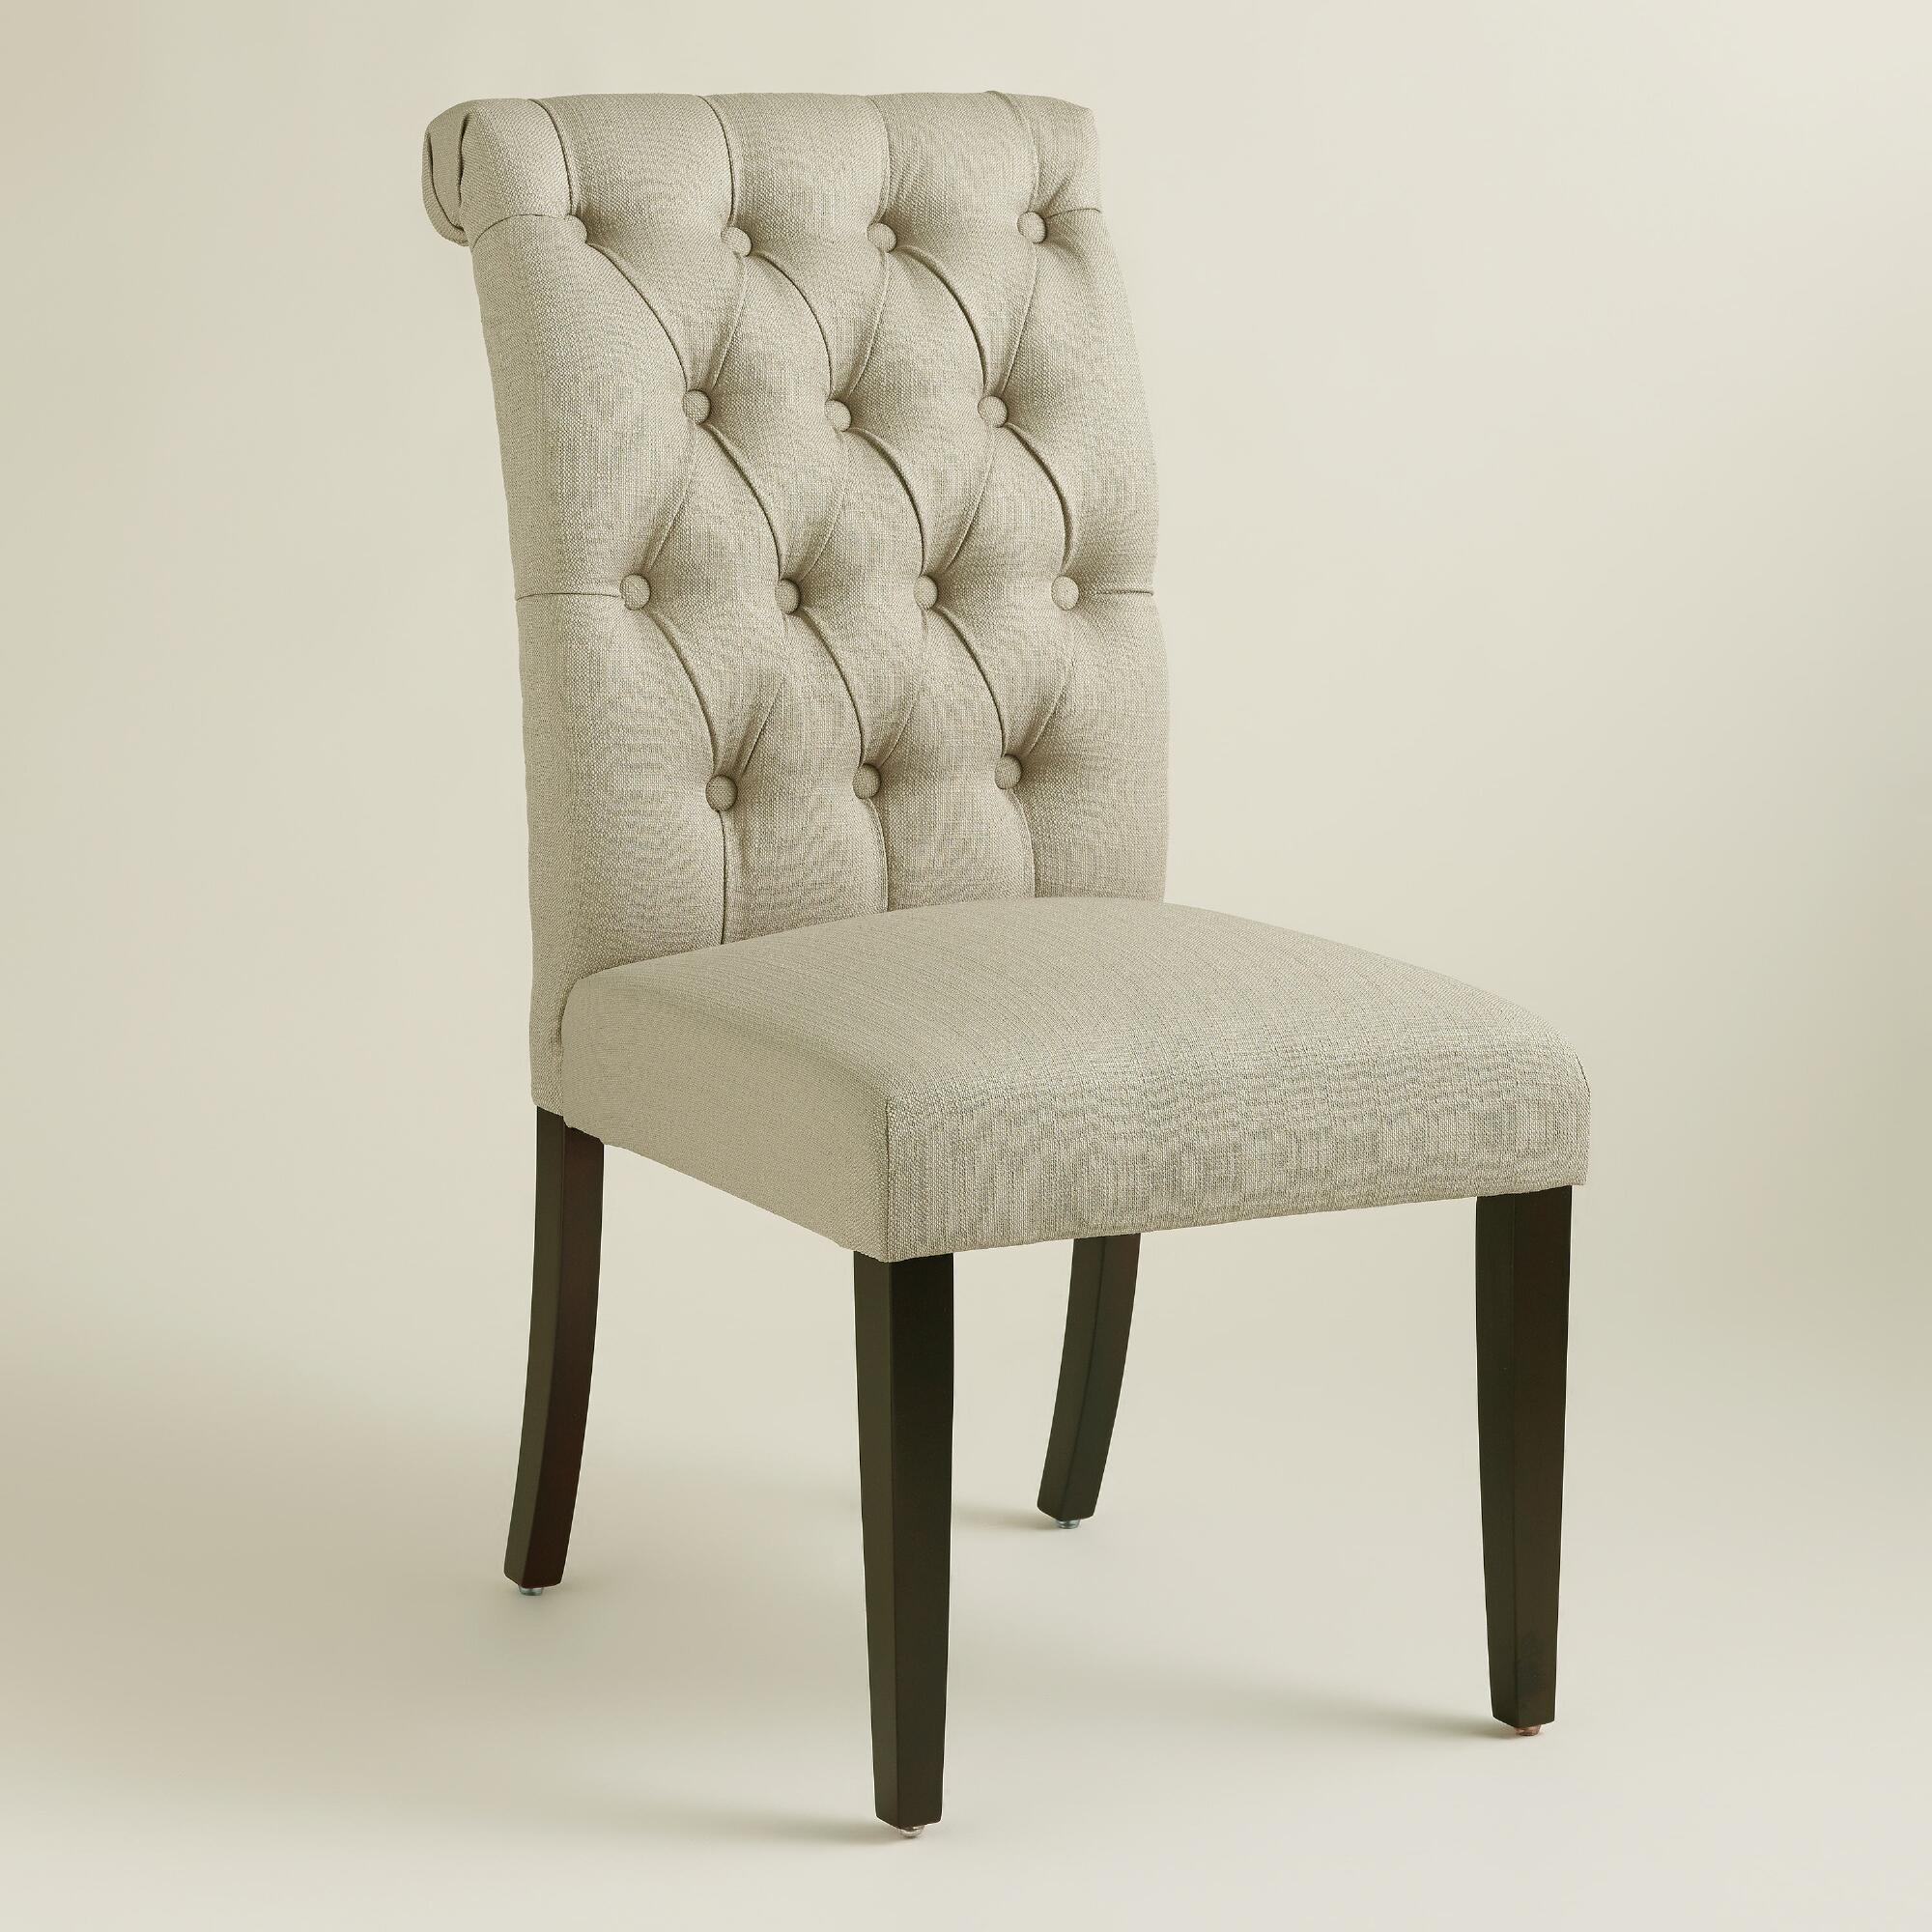 Inexpensive Dining Room Sets | Tufted Dining Chair | Tufted Wingback Dining Chair